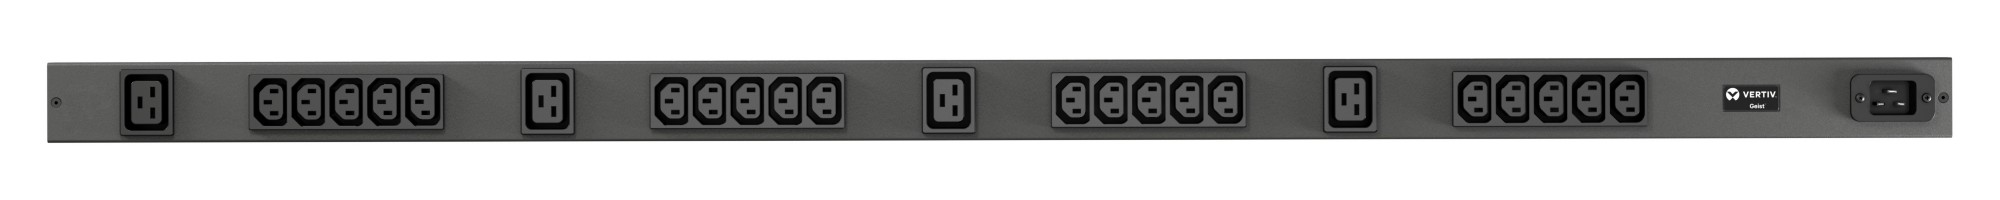 VERTIV VP7552 GEIST RPDU, BASIC, 0U, INPUT C20 230V 16A, OUTPUTS (20)C13 | (4)C19 POWER DISTRIBUTION UNIT (PDU) BLACK 24 AC OUTLET(S)